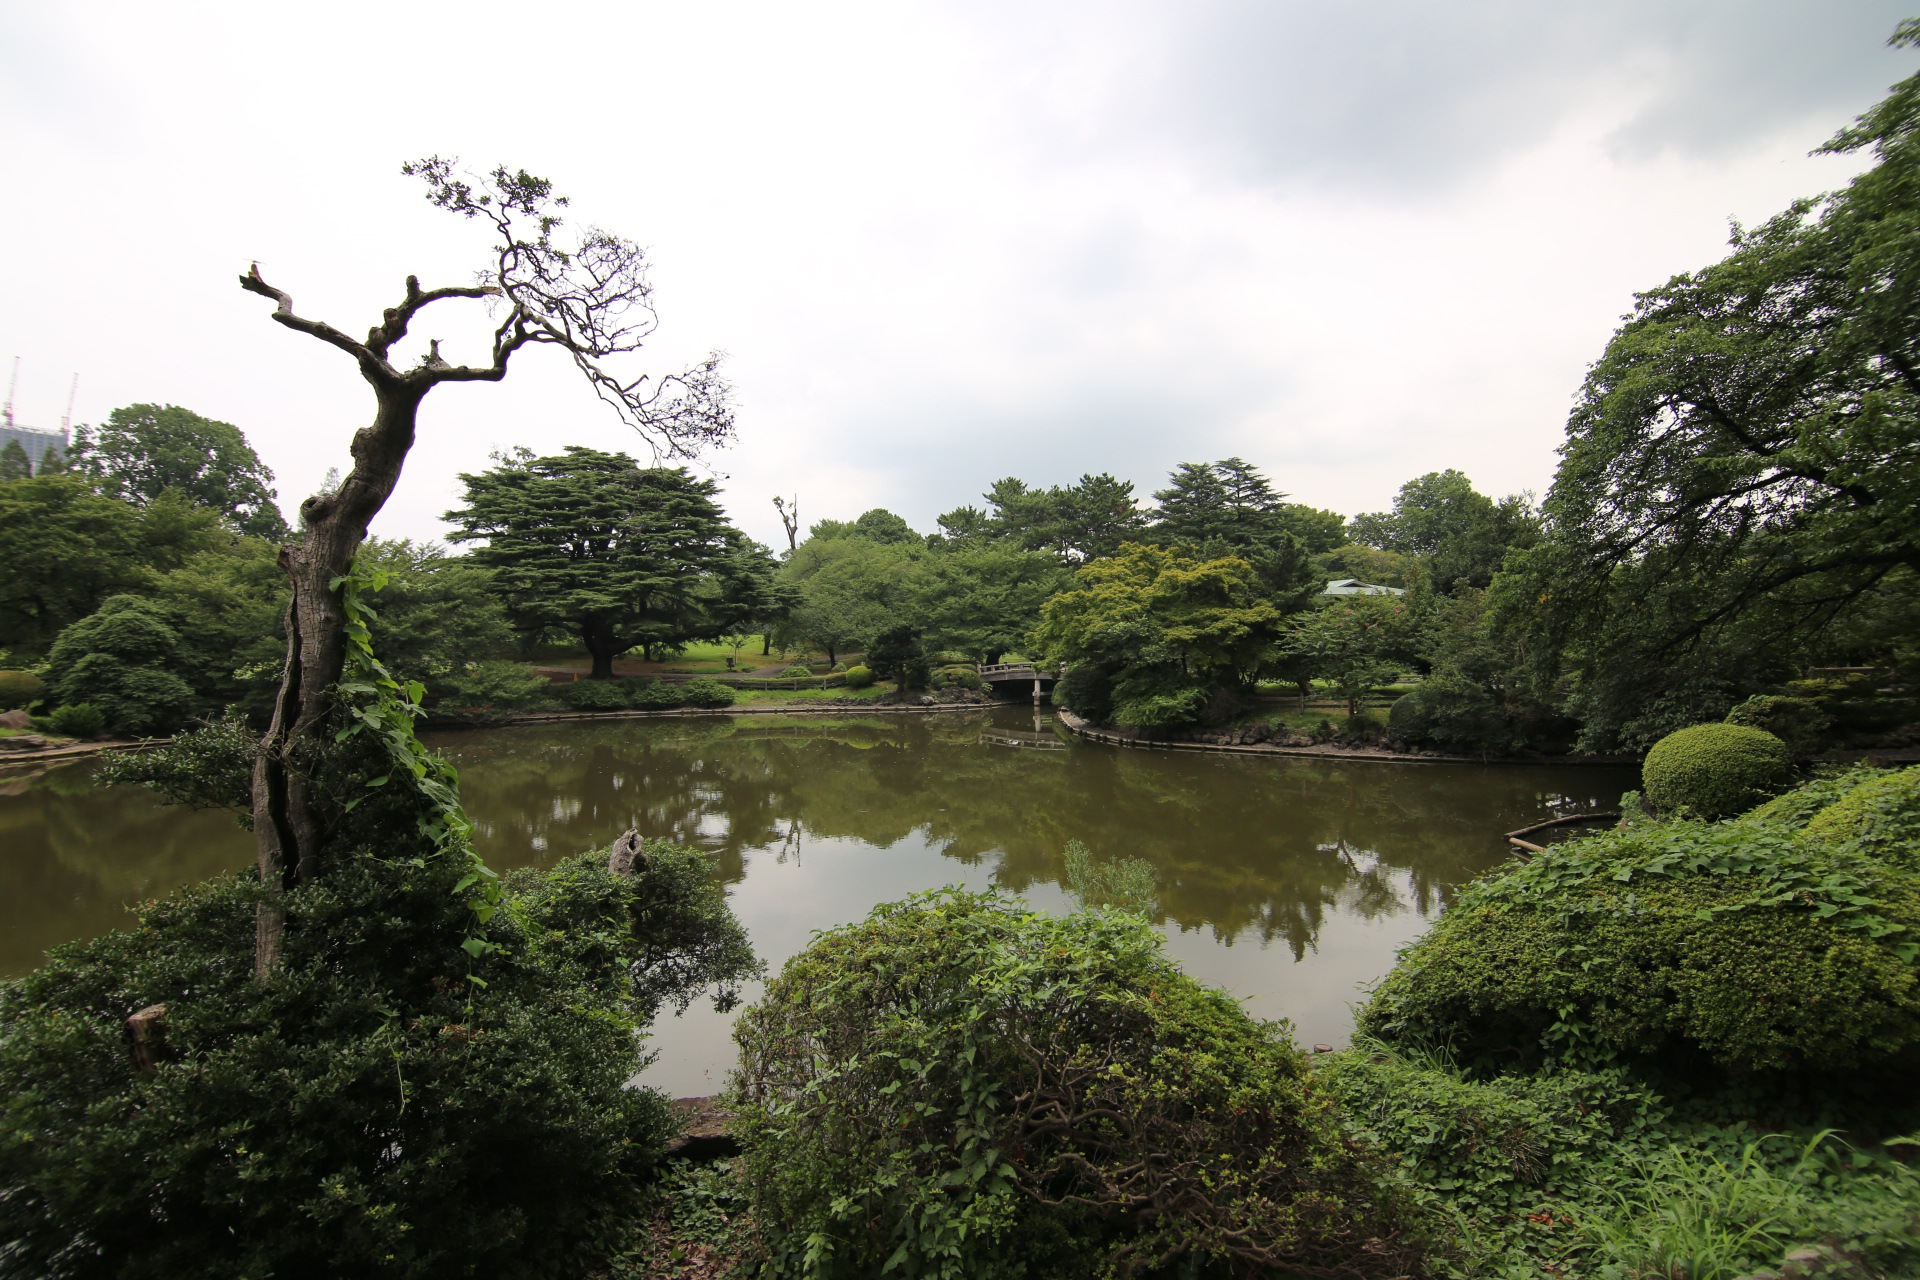 Shinjuku Gyoen National Garden - 新宿御苑